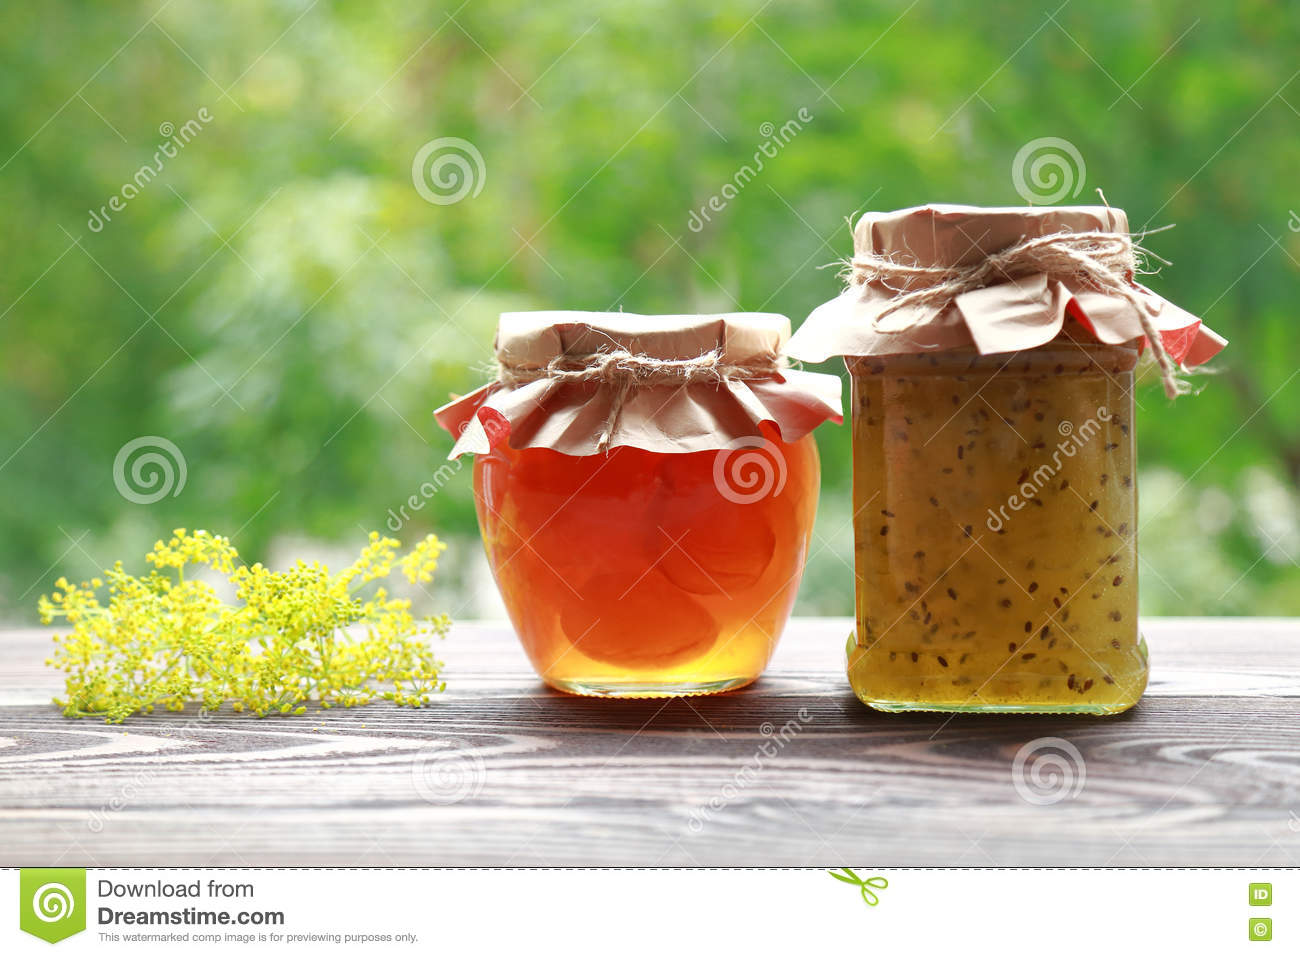 Homemade Fruit Jam In The Jar On Nature Background